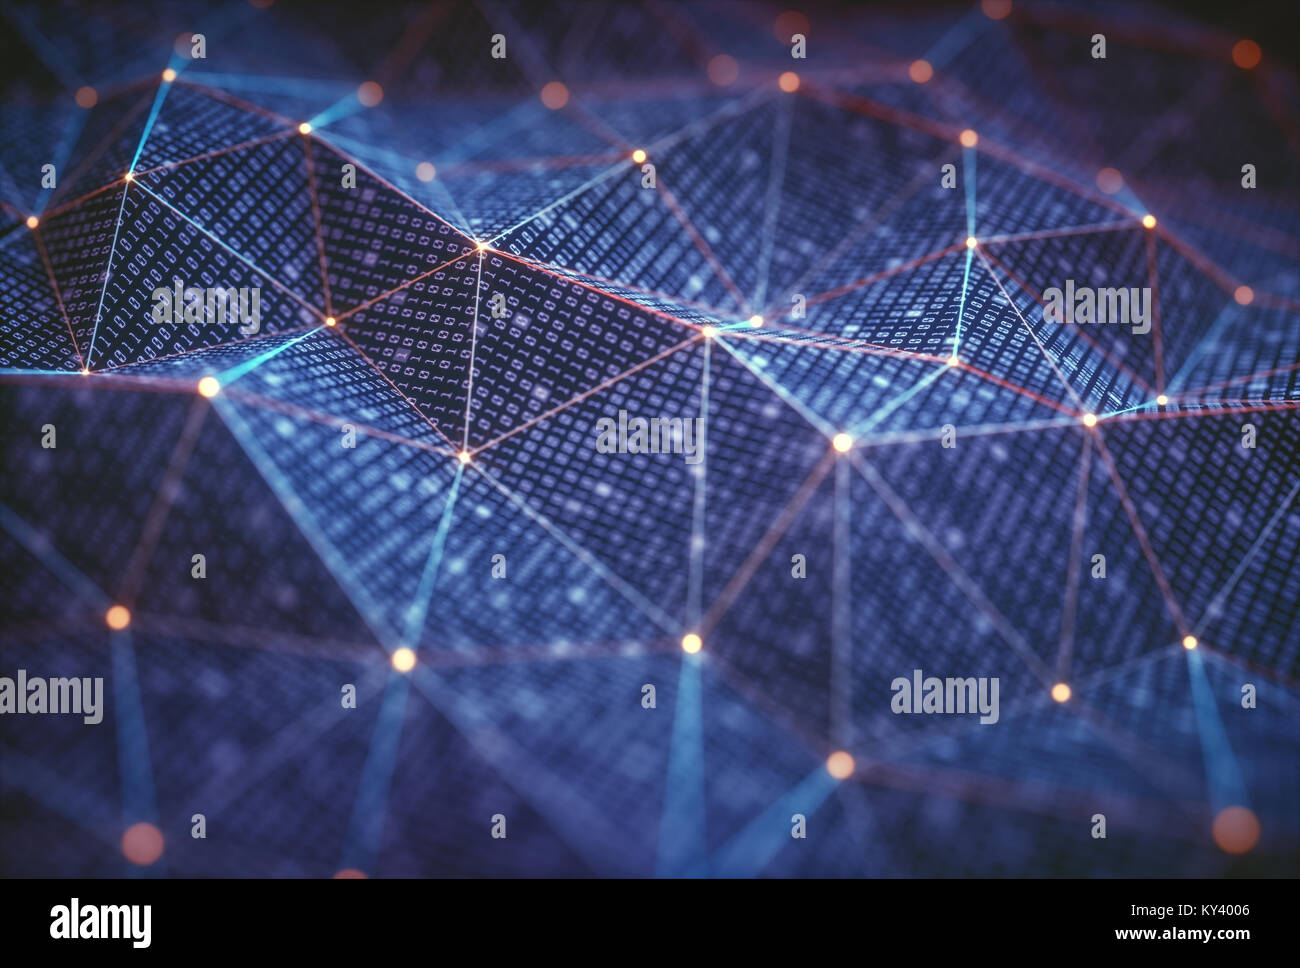 3D illustration, abstract background, technology concept. Binary surfaces interconnected by connections to data - Stock Image